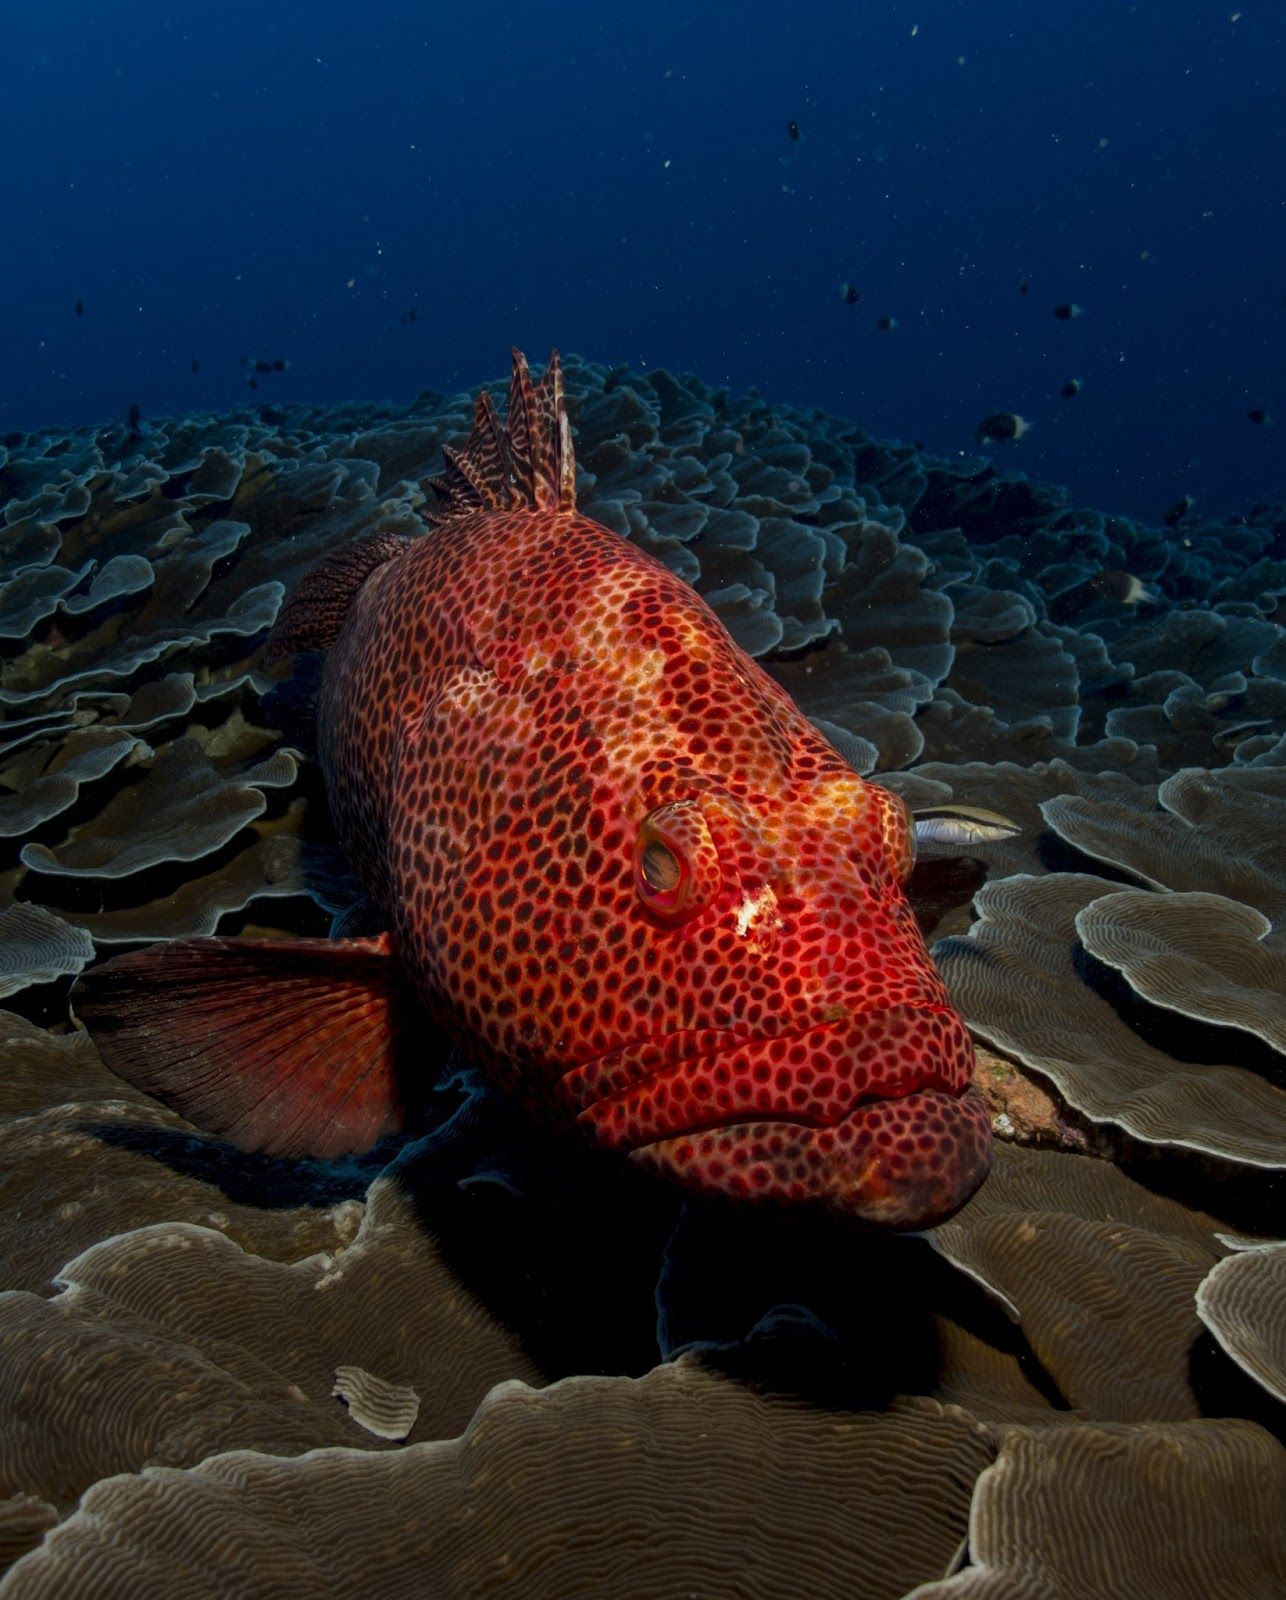 Red grouper A fish that uses red color to send signals like traffic